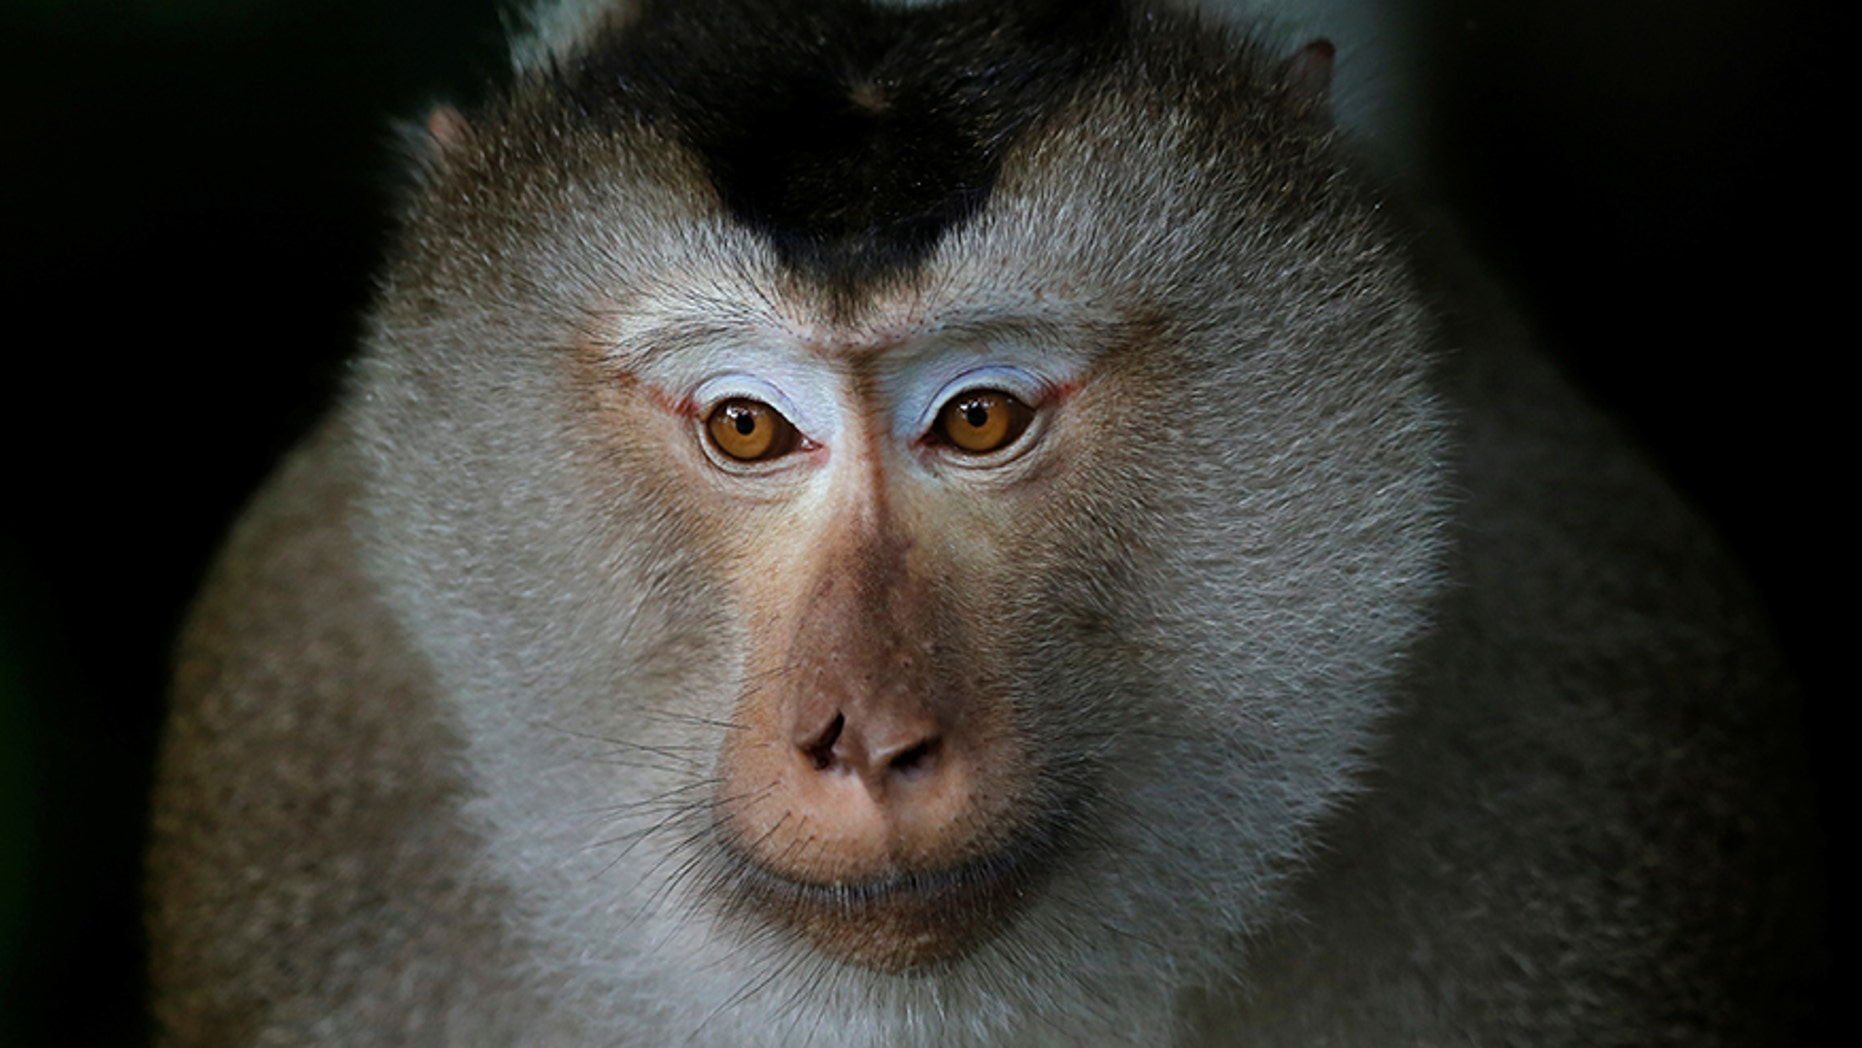 A macaque in Khao Yai national park in Thailand.